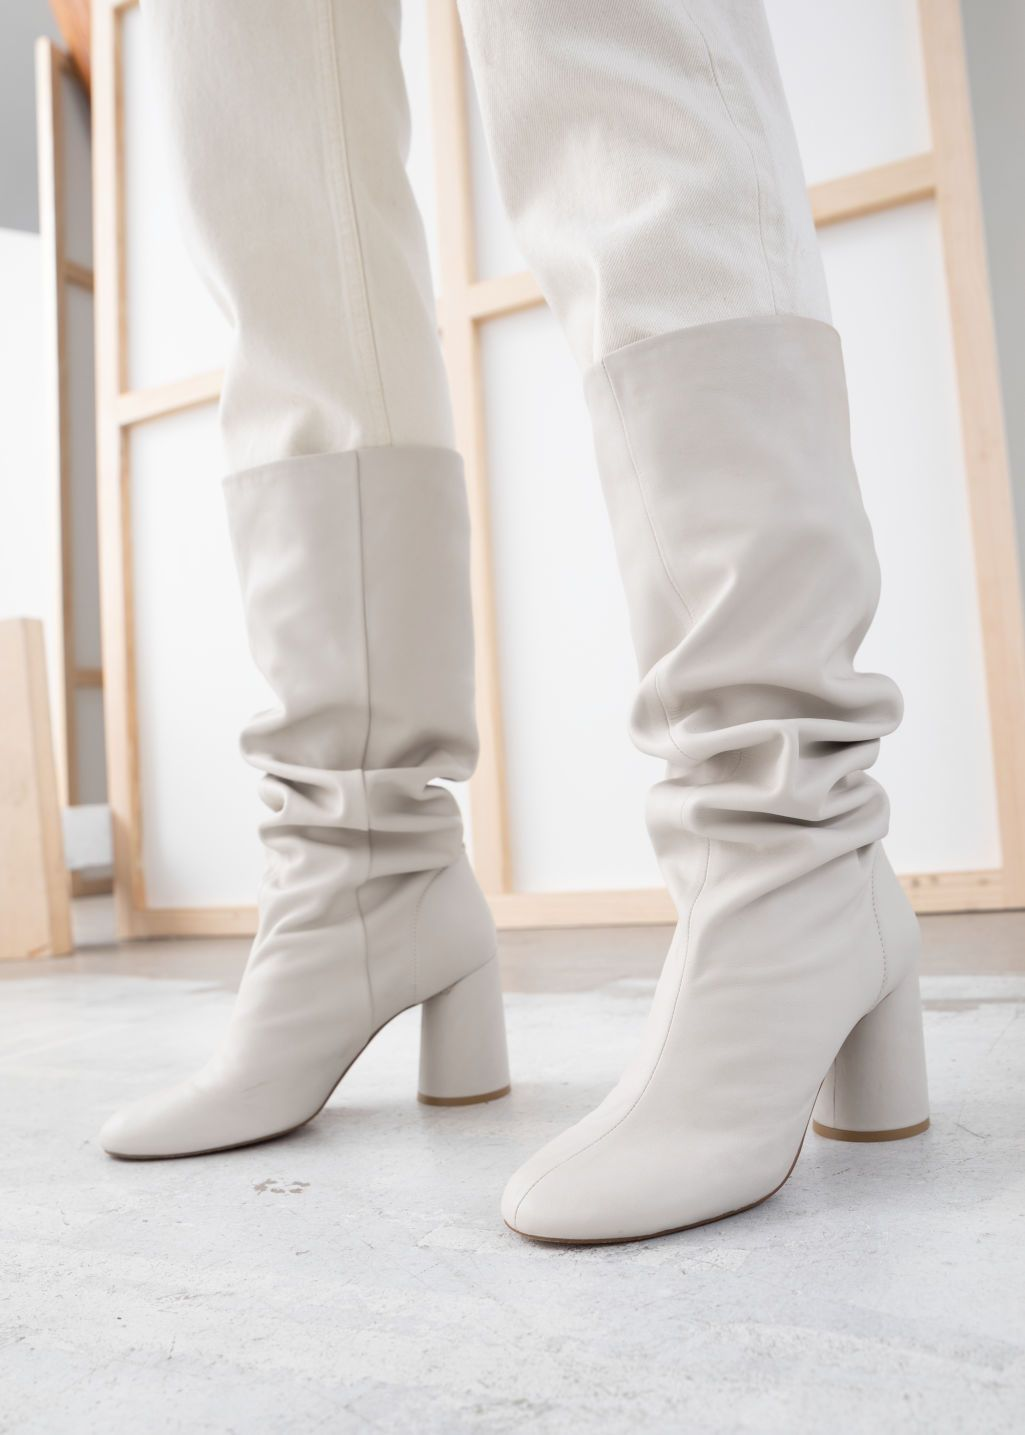 Boots, Leather boots, White knee high boots